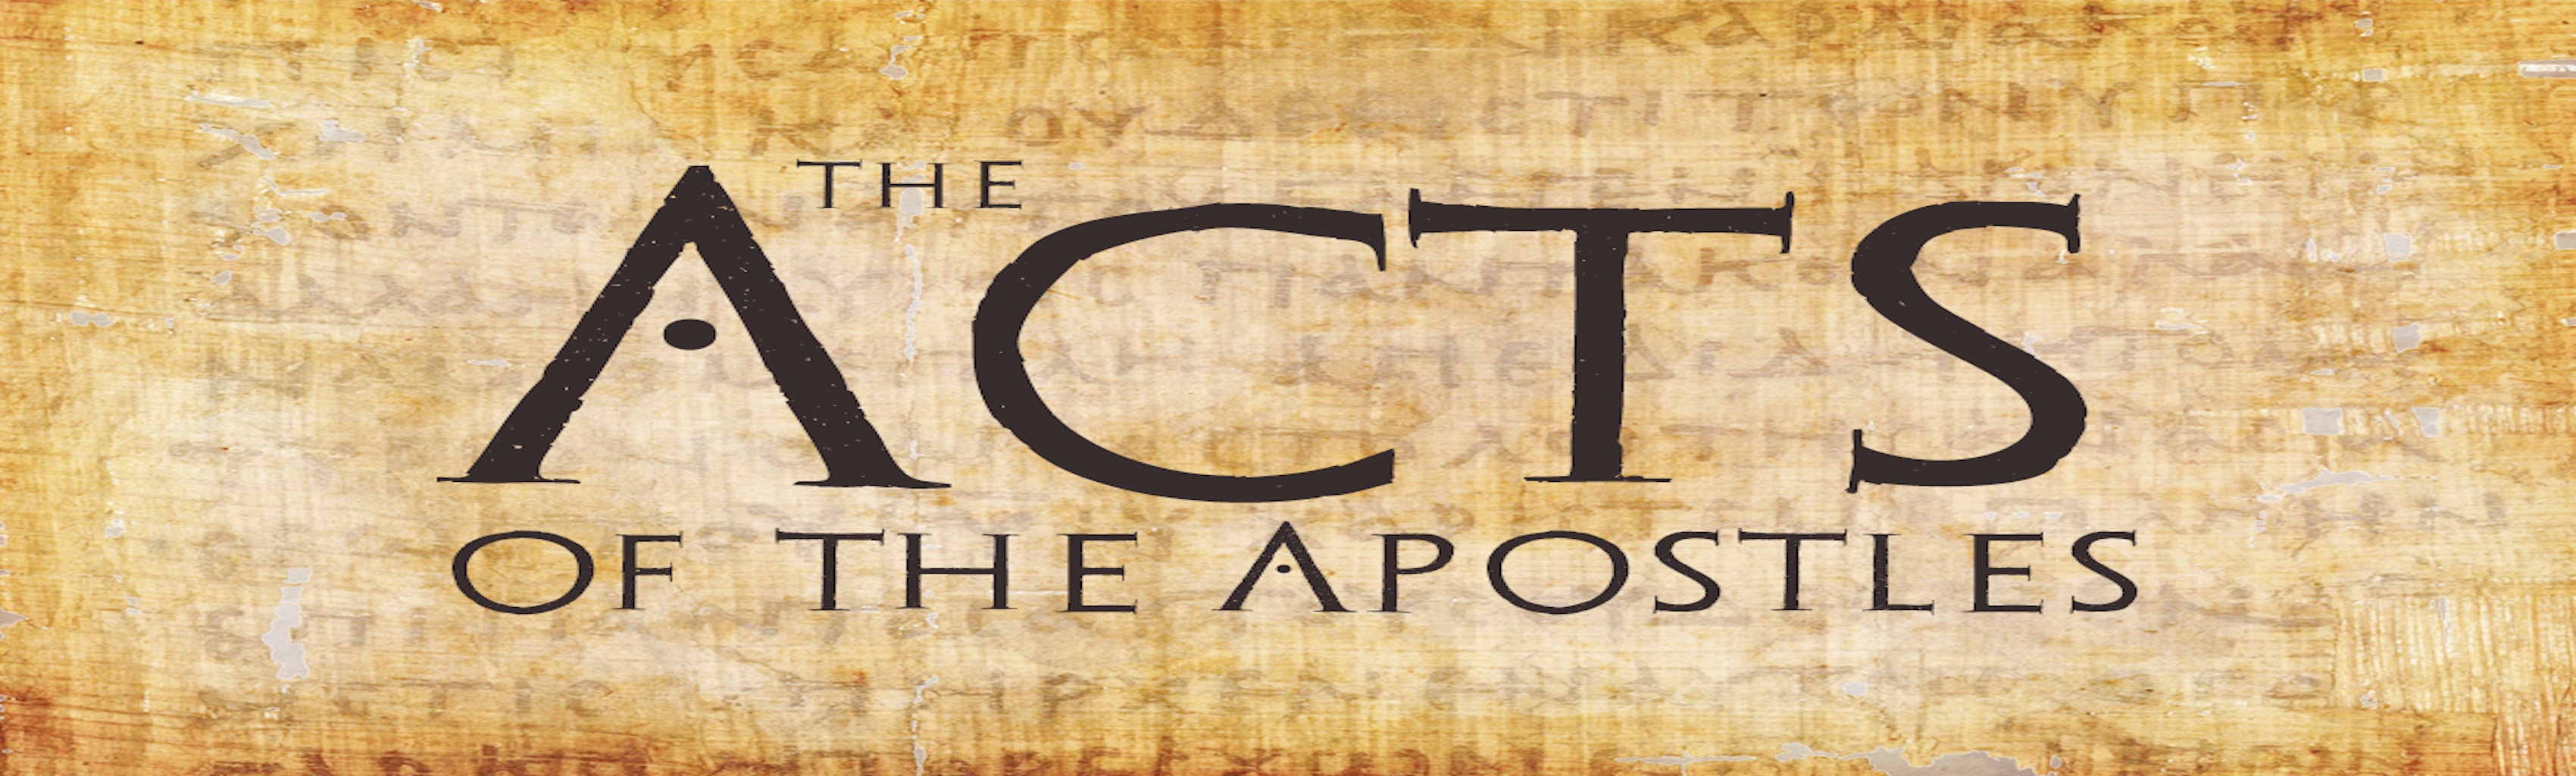 Getting The Gospel Out banner